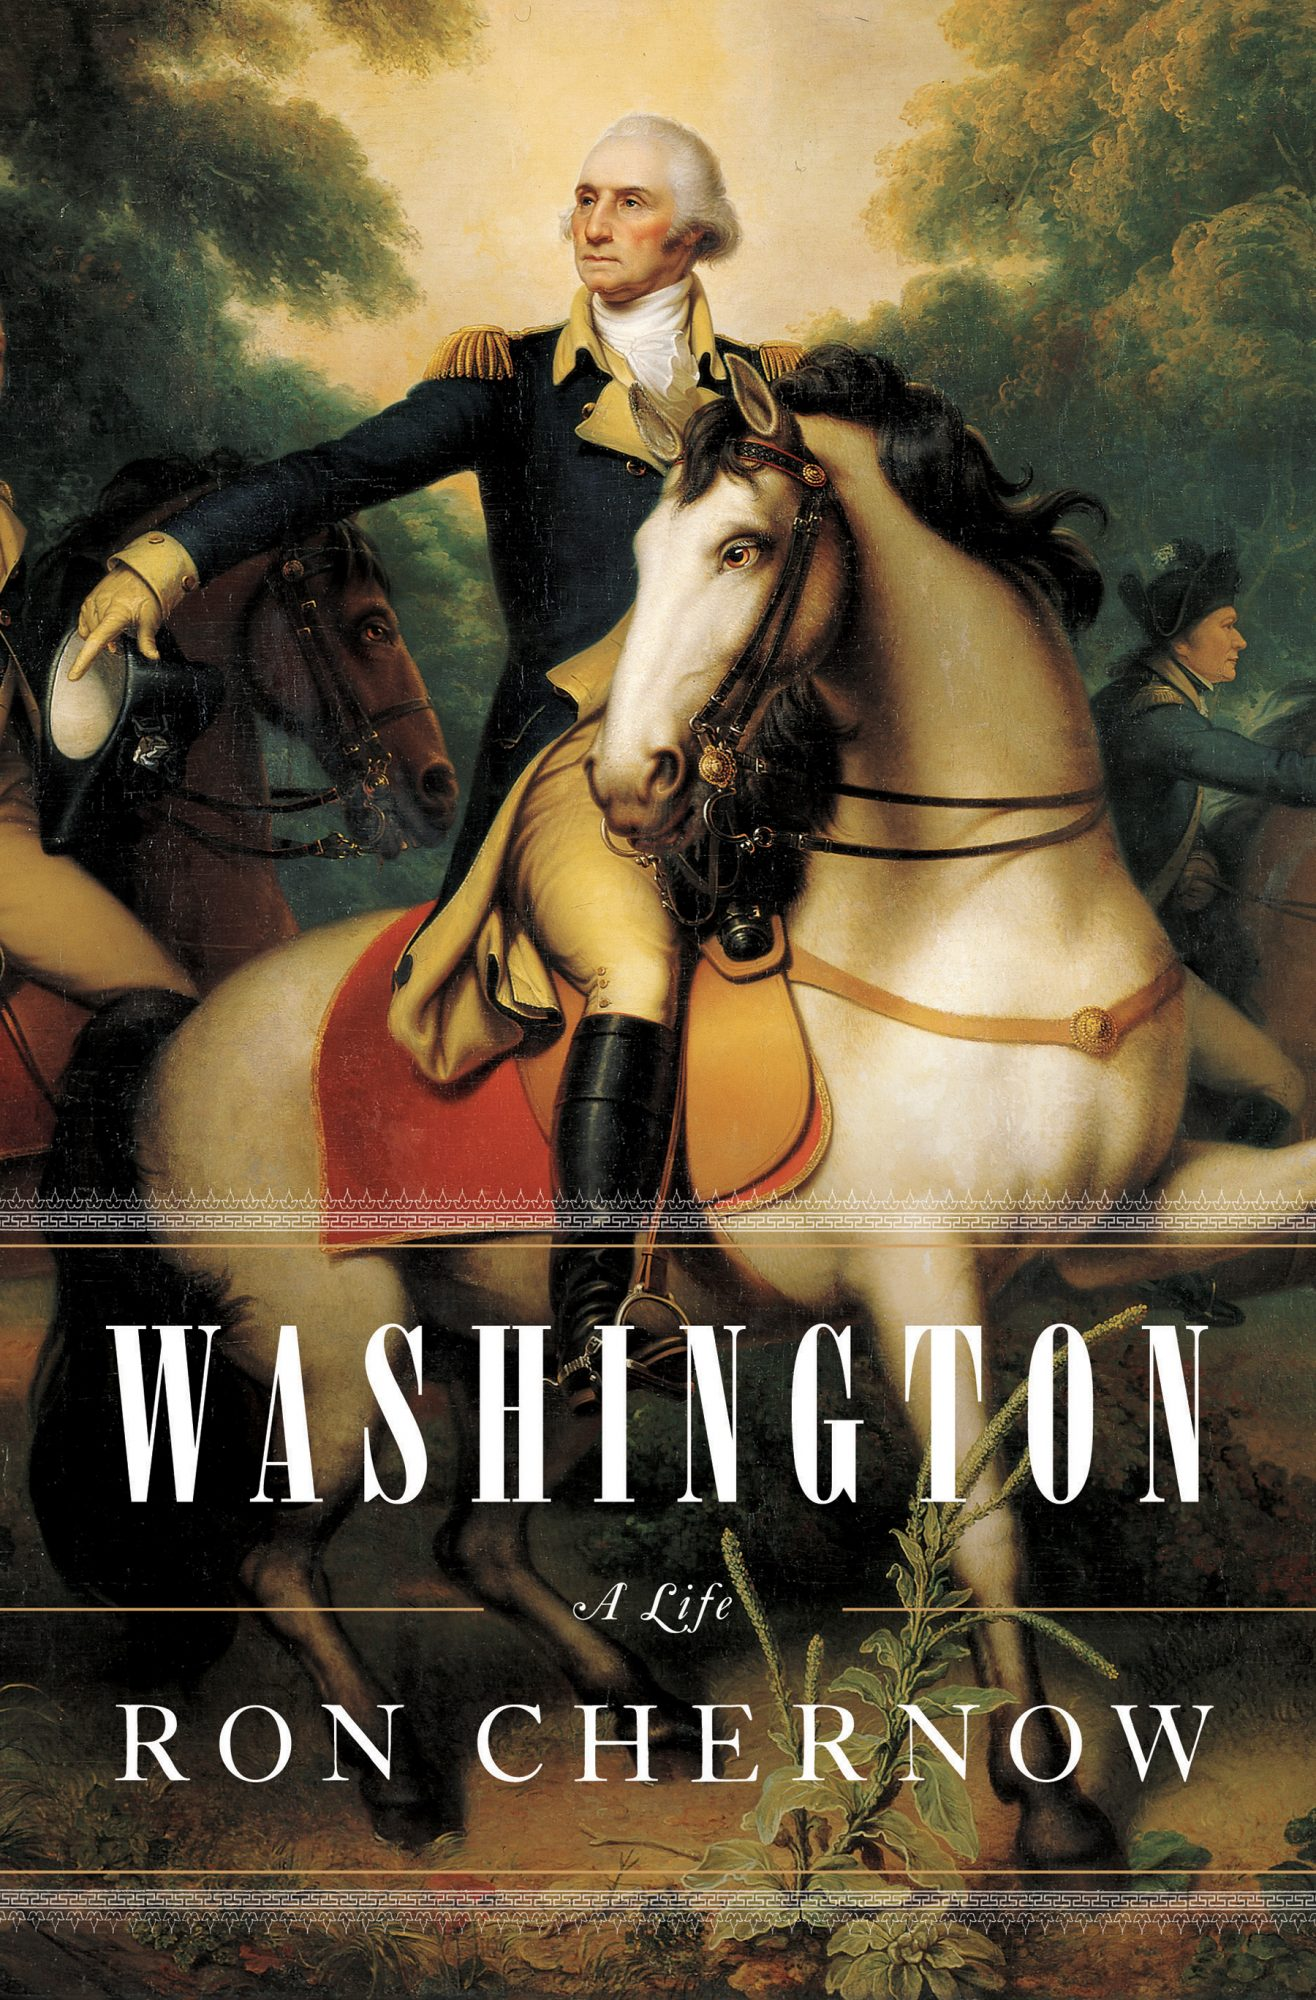 Ron Chernow, Washington: A Life